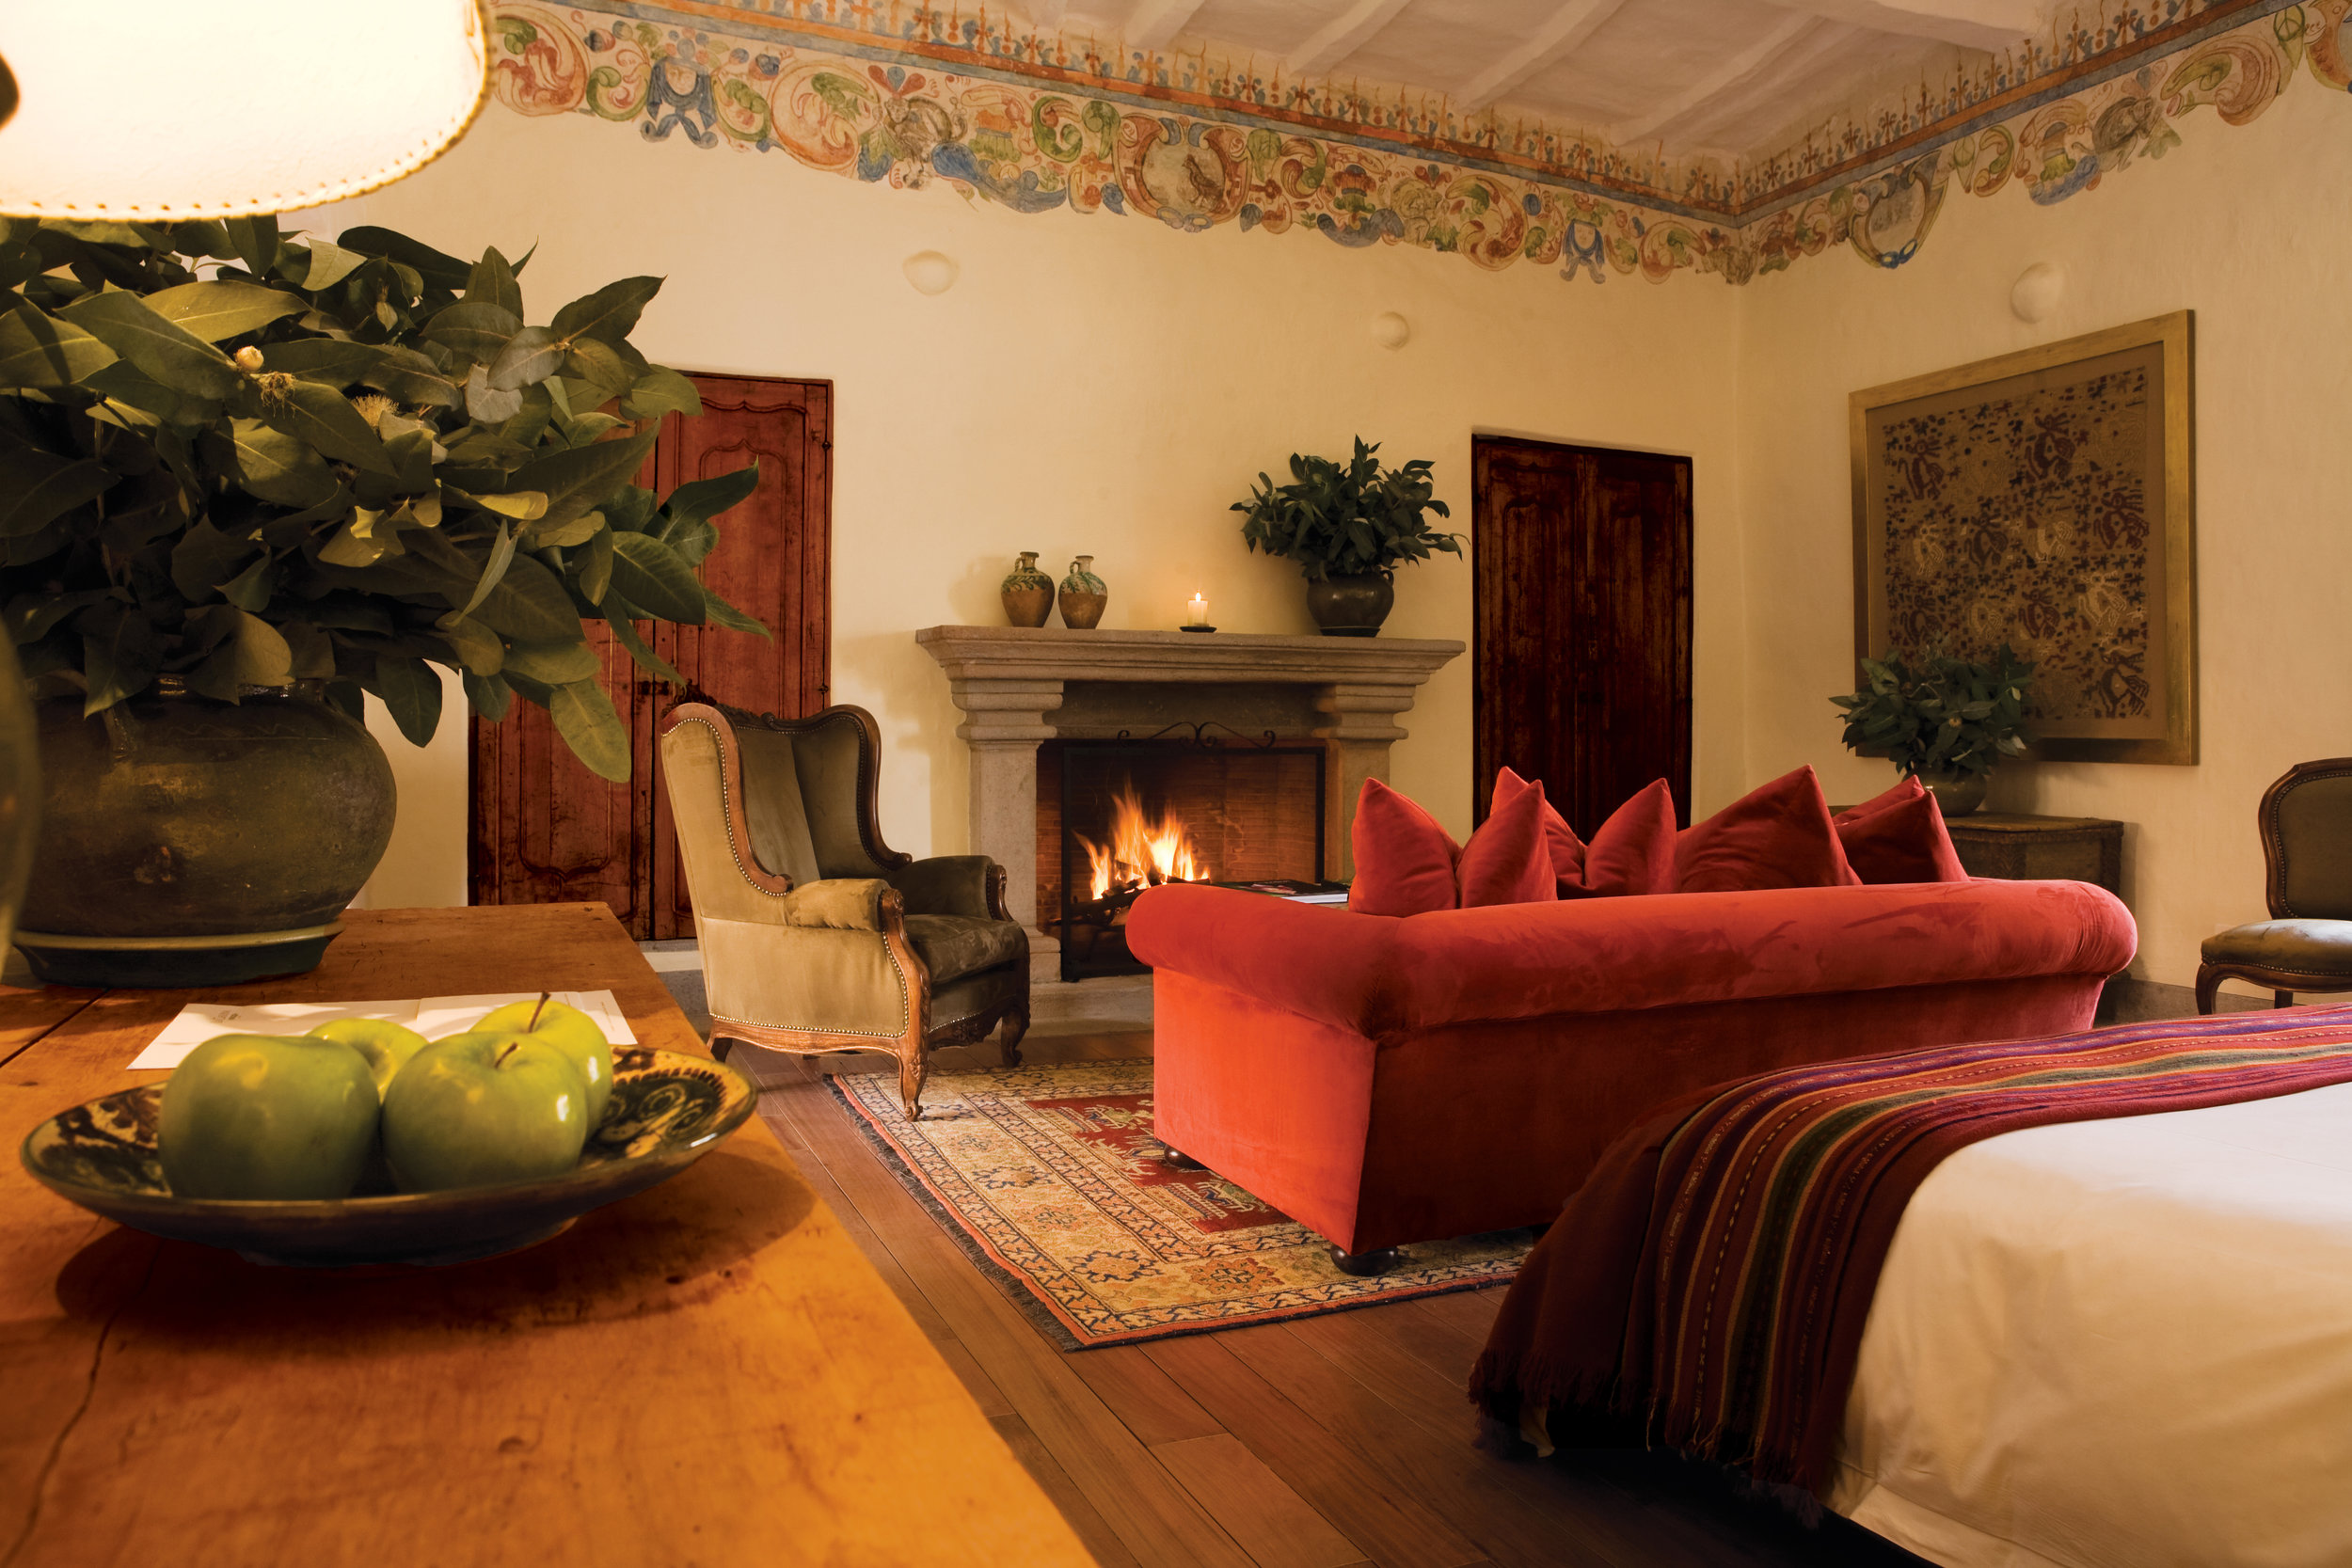 One of just two of the Plaza View Suites at Inkaterra La Casona